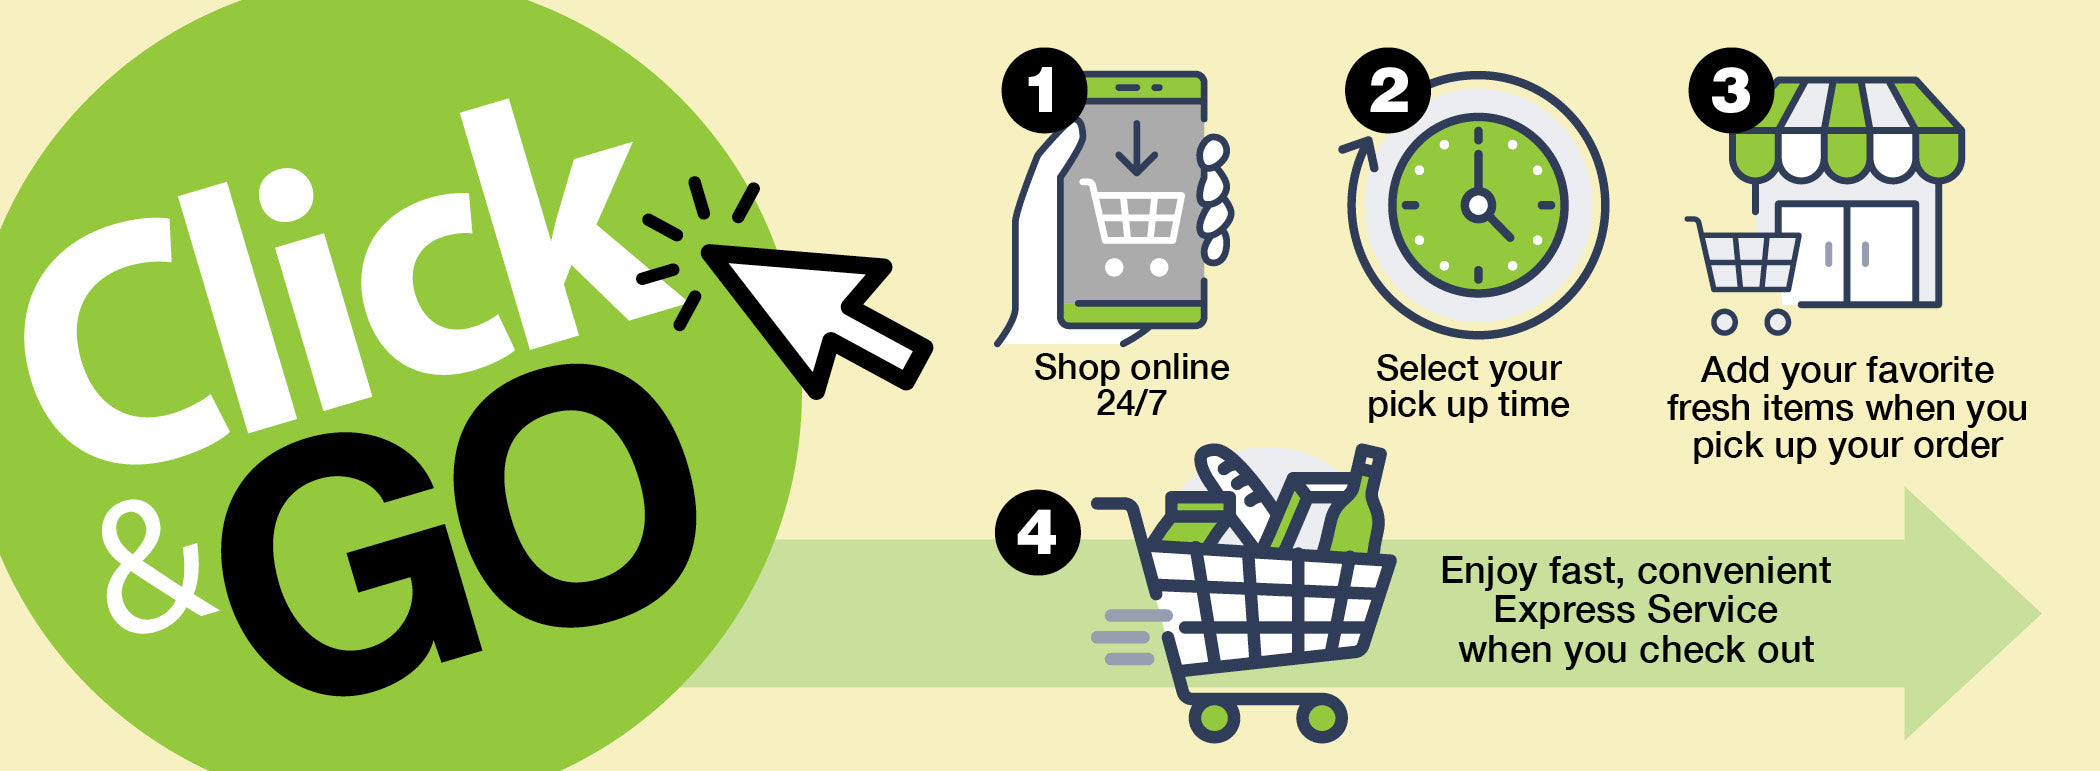 Shop online, select your pickup time, add your favorite fresh items when you pick up your order, and enjoy fast, convenient express service when you check out